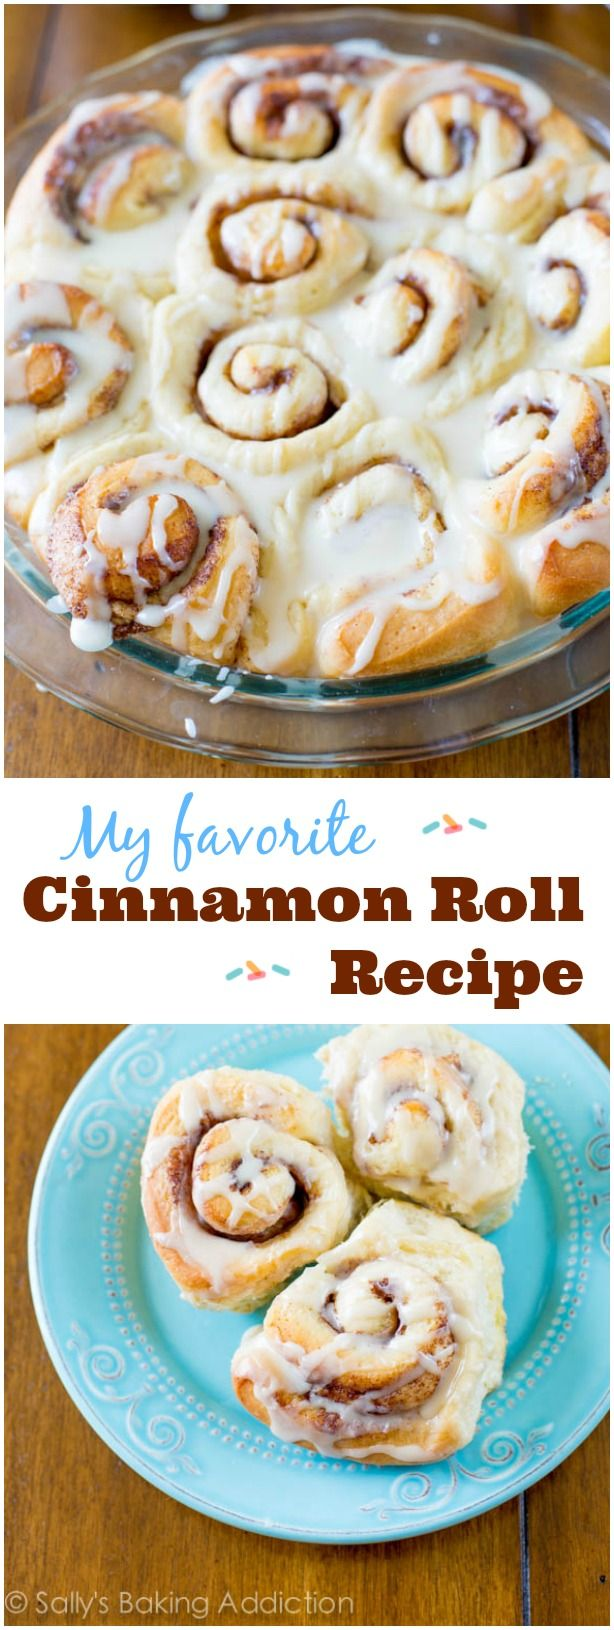 These fluffy, gooey cinnamon rolls are the best! They only require 1 rise and are perfect for beginners.